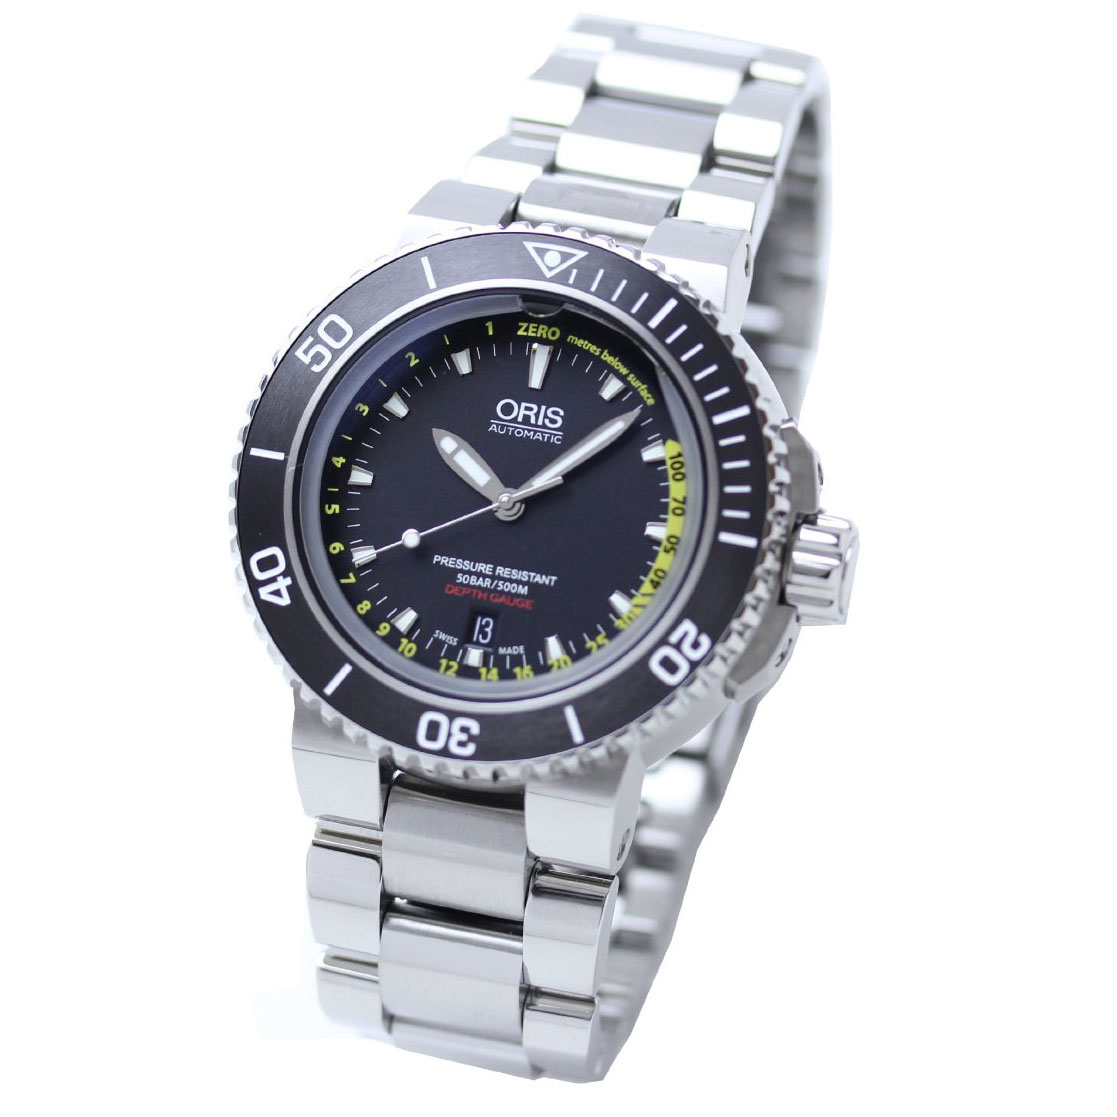 professional thumb limited oris edition aquis watches hammerhead